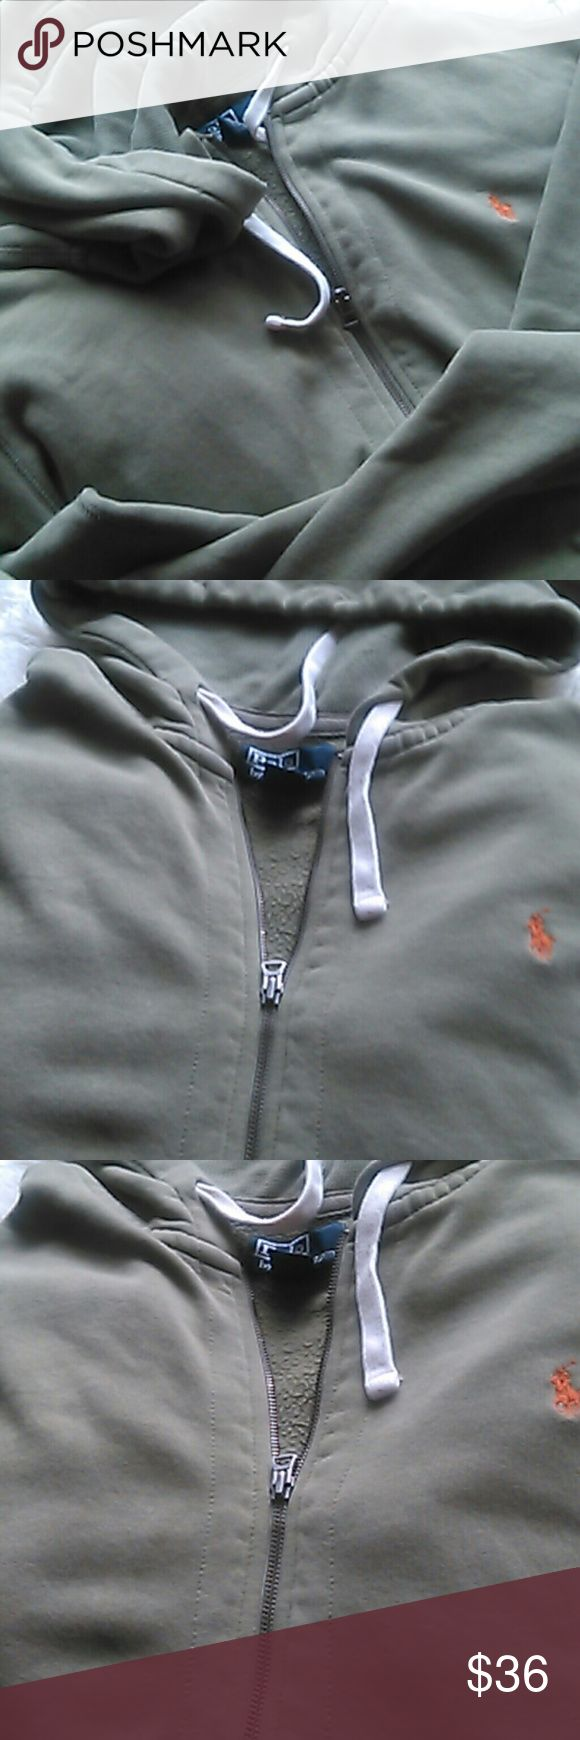 Polo Hoodie Sweat, Size XL Front pockets, zip up, pea green with orange insignia, sleeve ends are droopy, see last pic Polo by Ralph Lauren Jackets & Coats Lightweight & Shirt Jackets